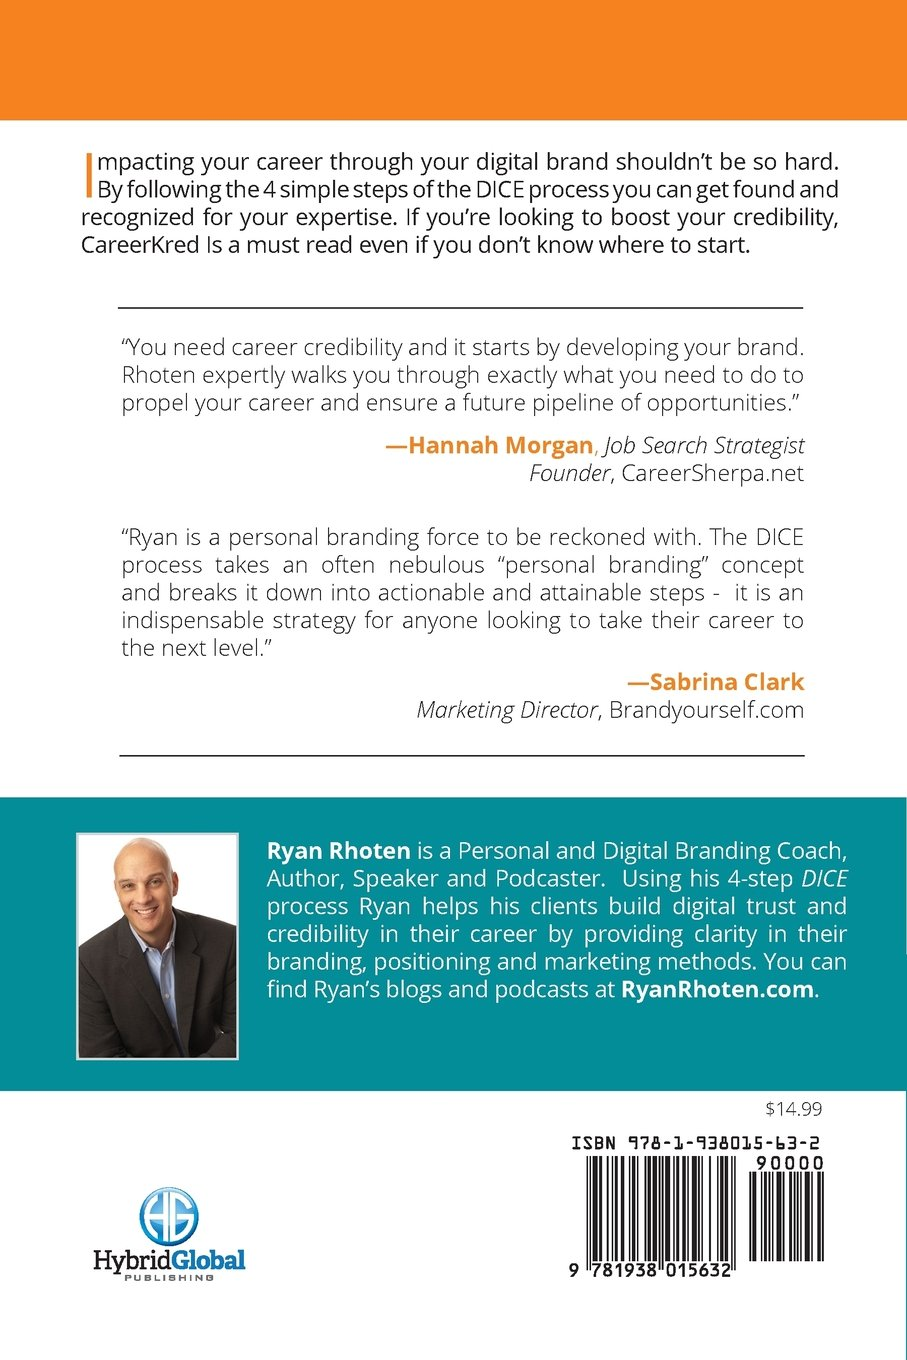 CareerKred: 4 Simple Steps to Build Your Digital Brand and Boost  Credibility in Your Career: Ryan Rhoten: 9781938015632: Amazon.com: Books